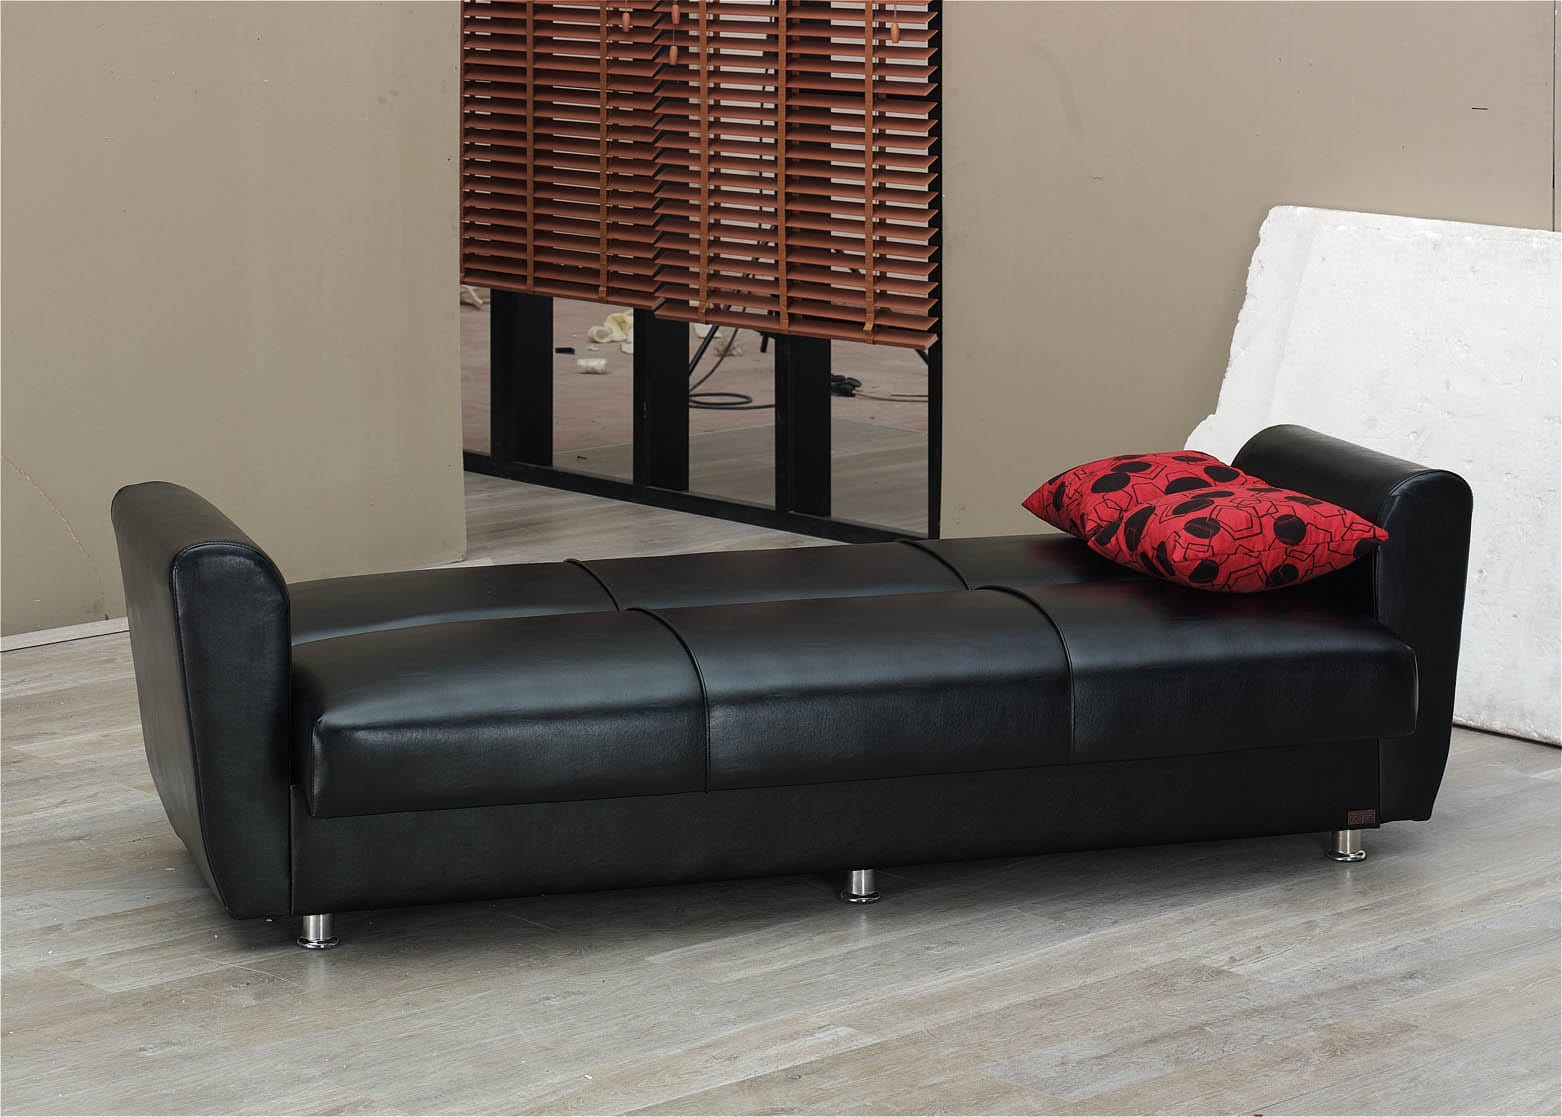 Harlem Black Leather Sofa Bed By Empire Furniture Usa